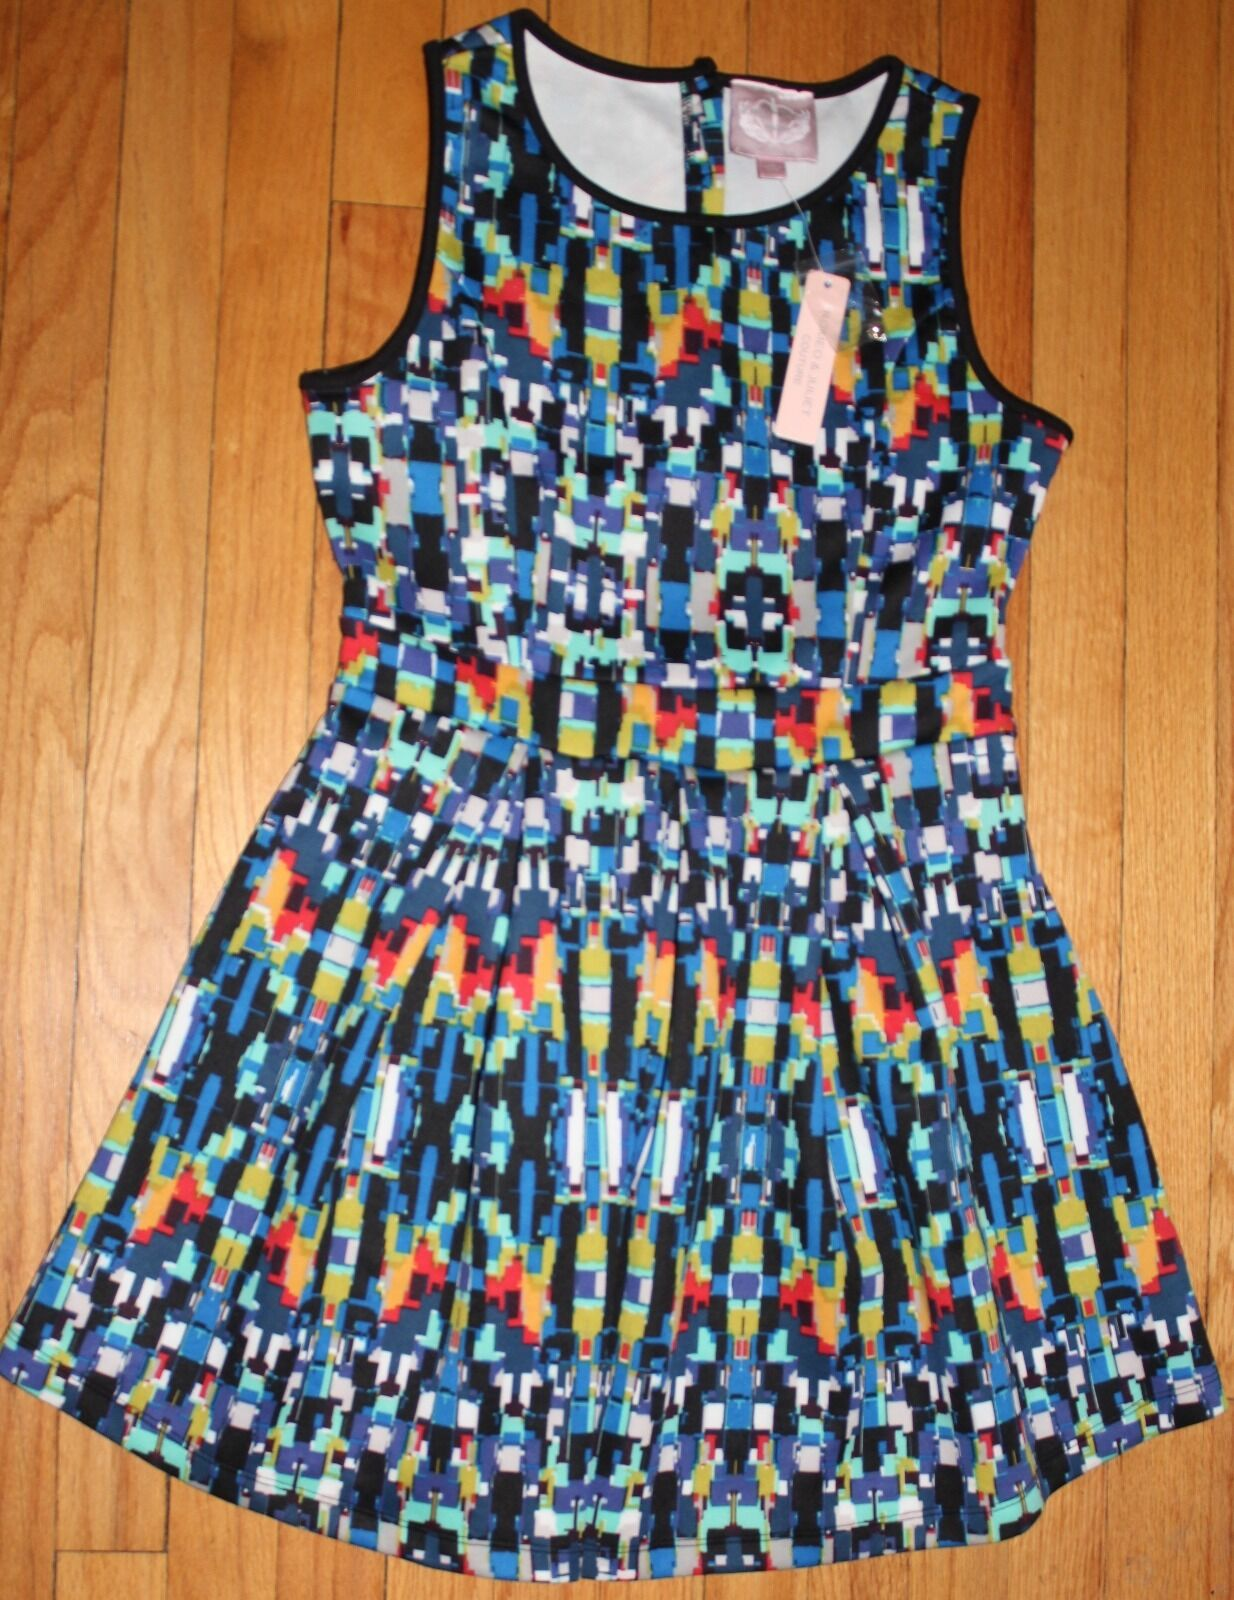 ROMEO & JULIET COUTURE MULTIcolorD PLEATED CASUAL DRESS SZ MEDIUM